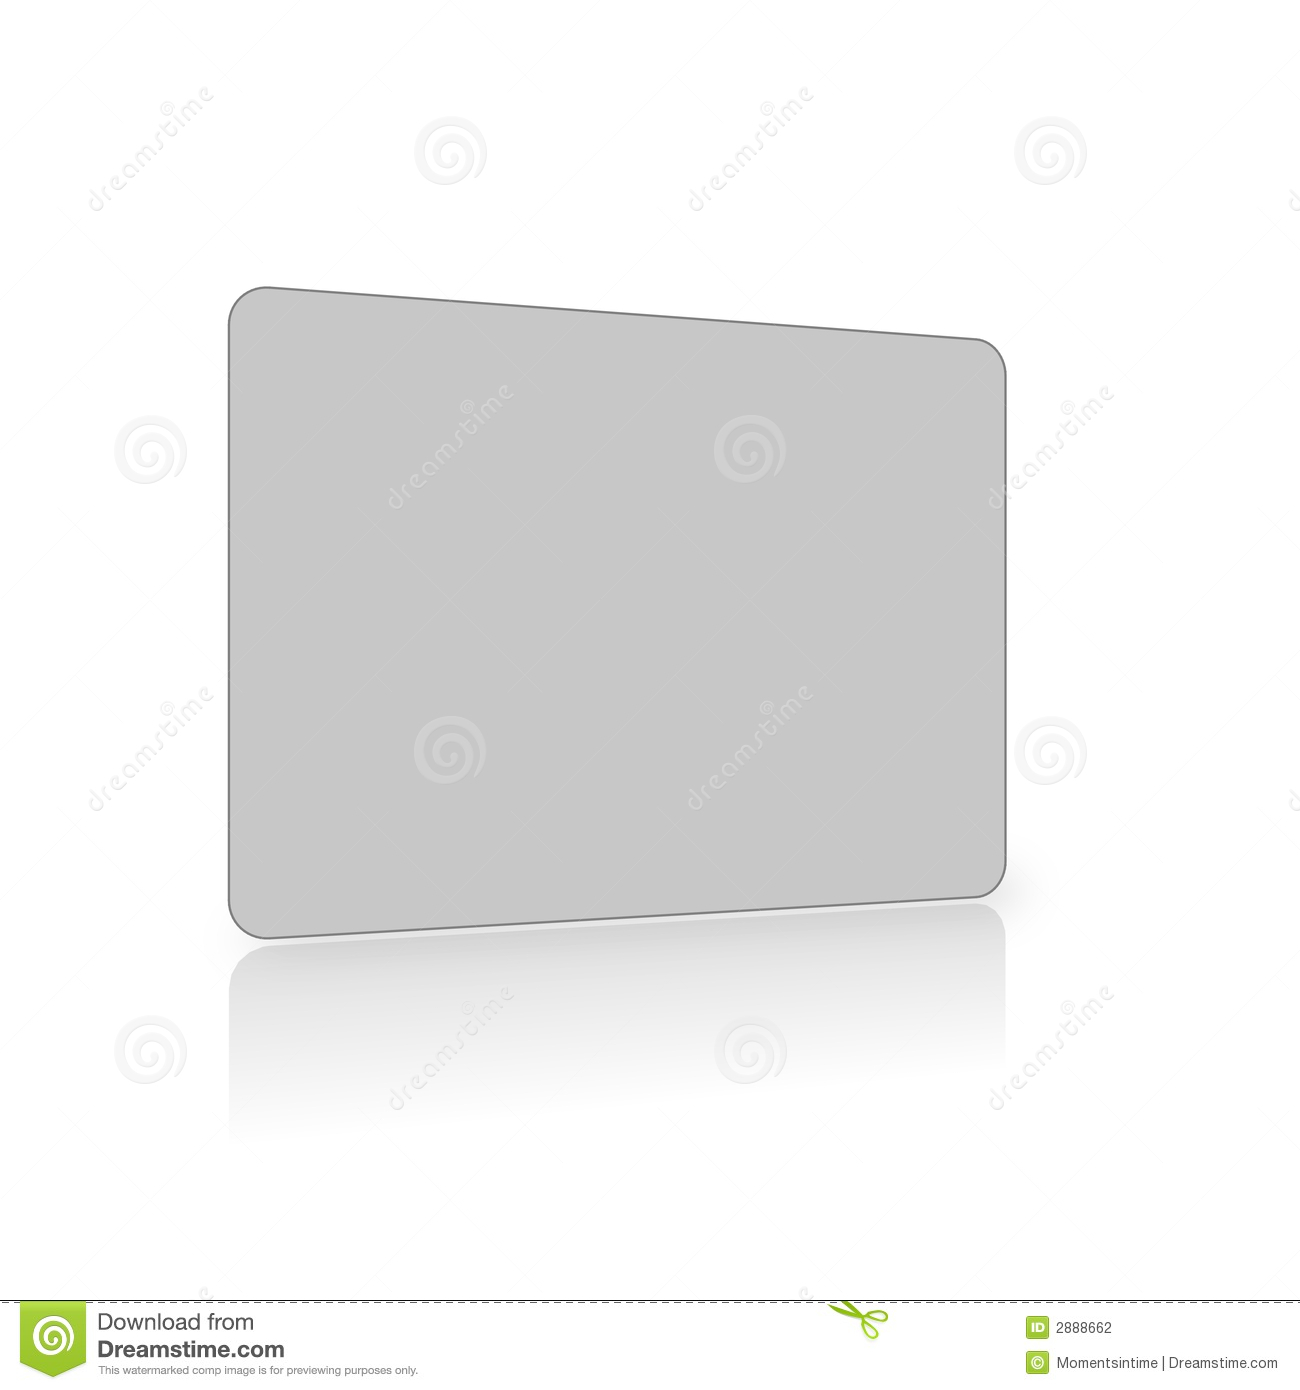 Blank grey card on white